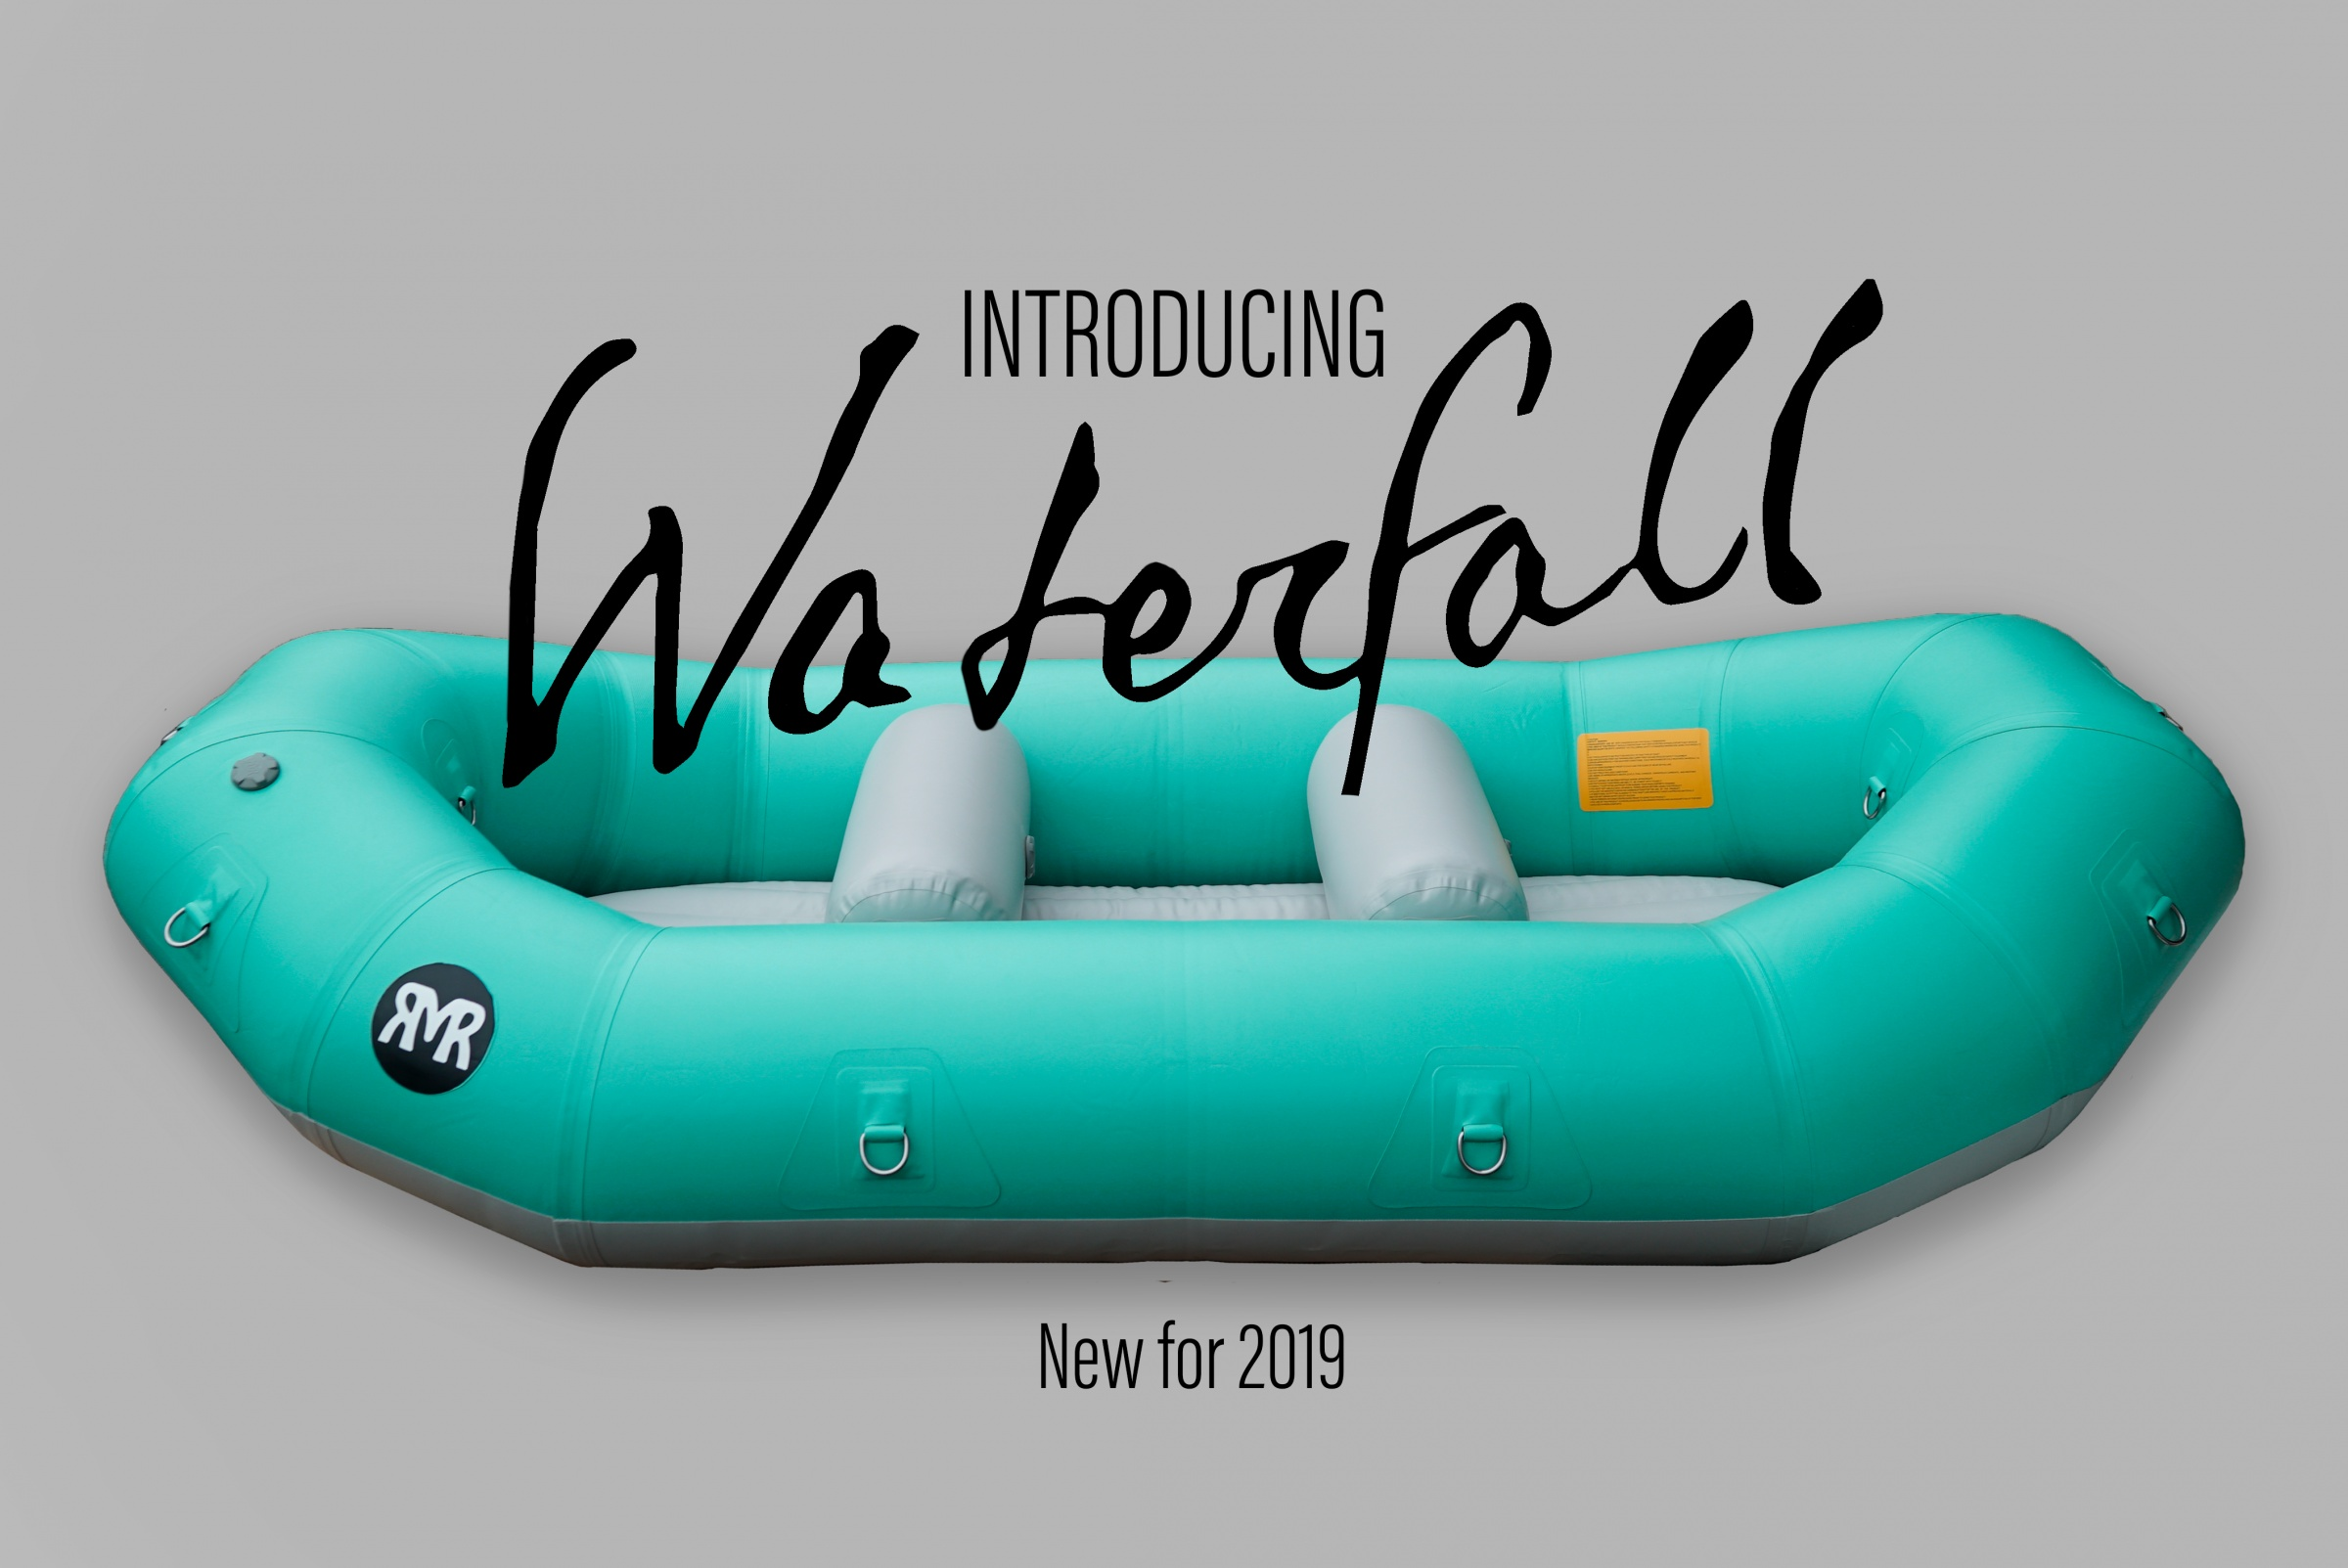 Click image for larger version  Name:Waterfall announcement.jpg Views:79 Size:450.8 KB ID:32819